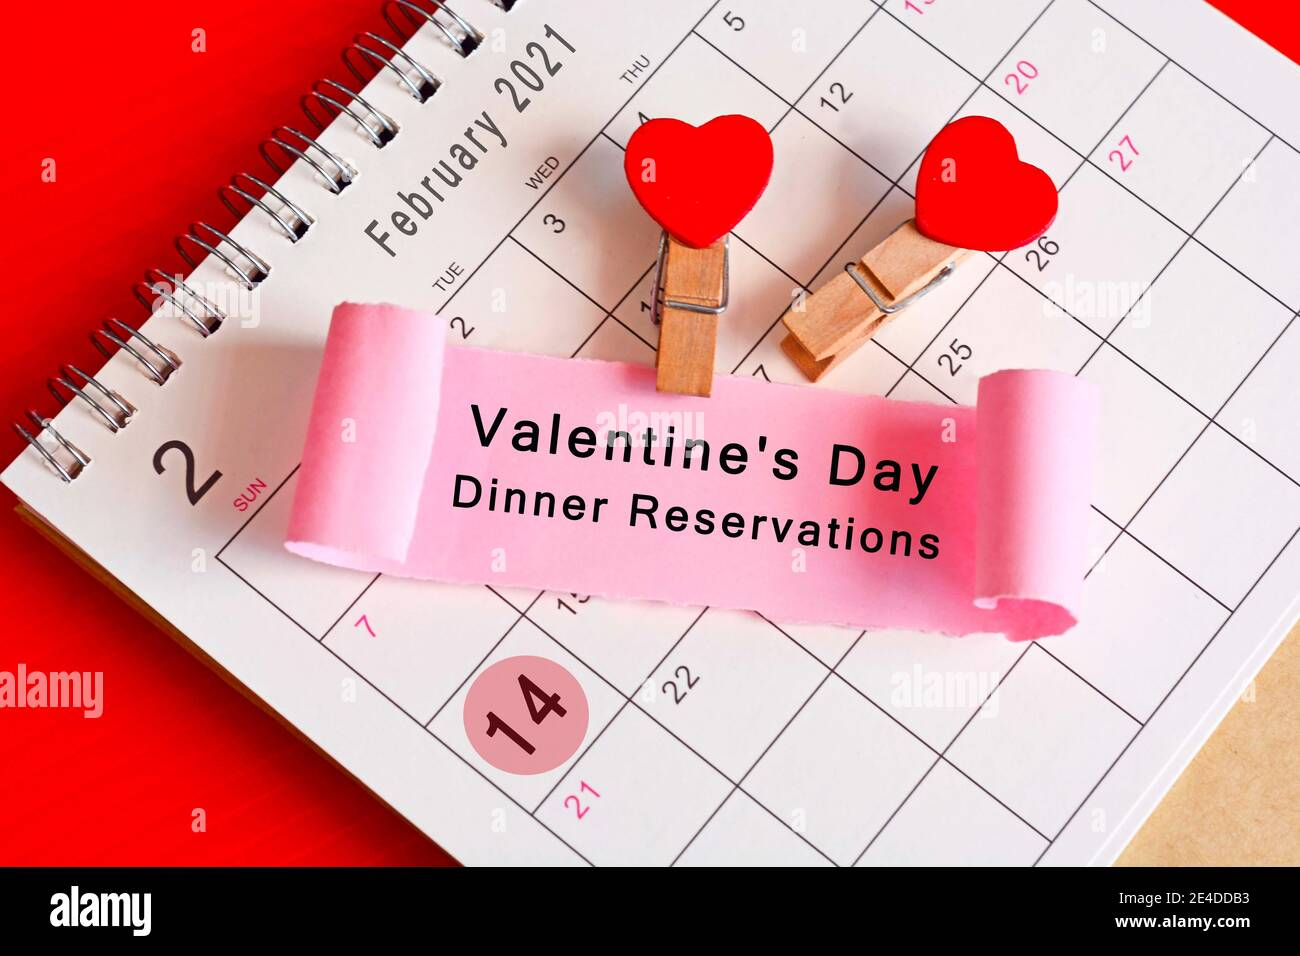 Torn Paper On February Calendar 2021 With Phase Valentine S Day Dinner Reservations Valentine S Day Concept Stock Photo Alamy